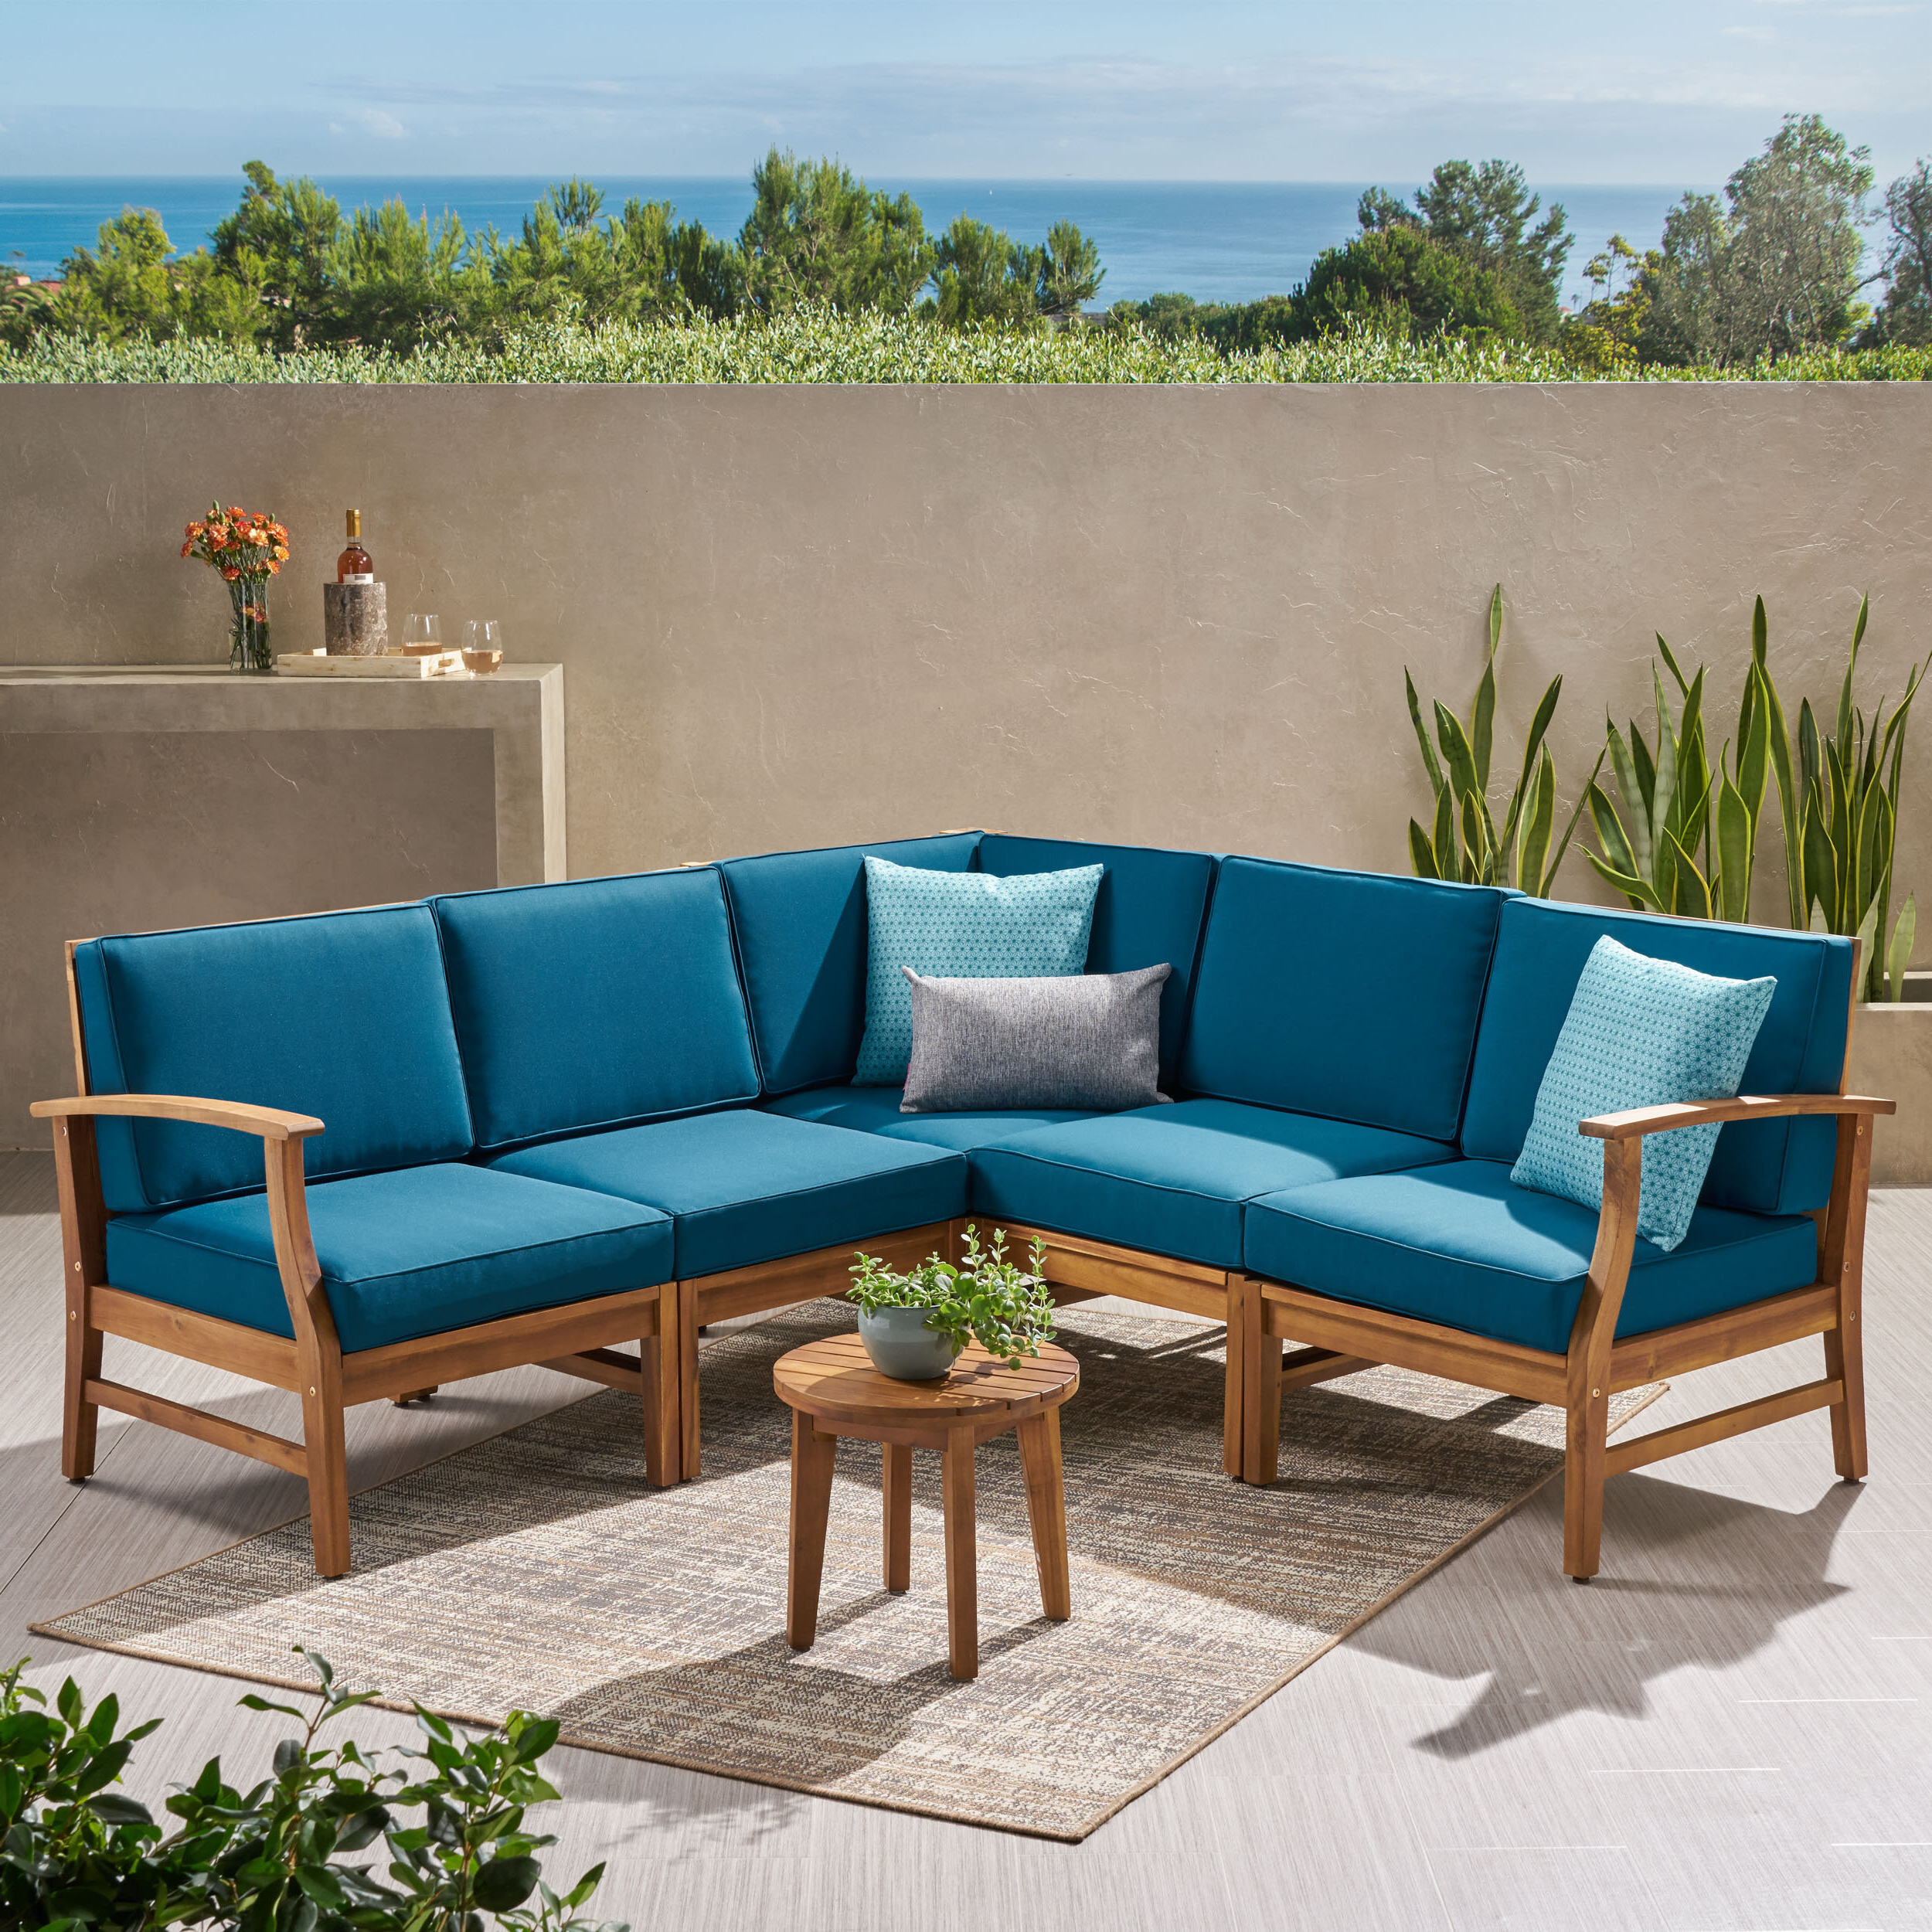 2020 Antonia Teak Patio Sectional With Cushions For Hursey Patio Sofas (View 2 of 20)